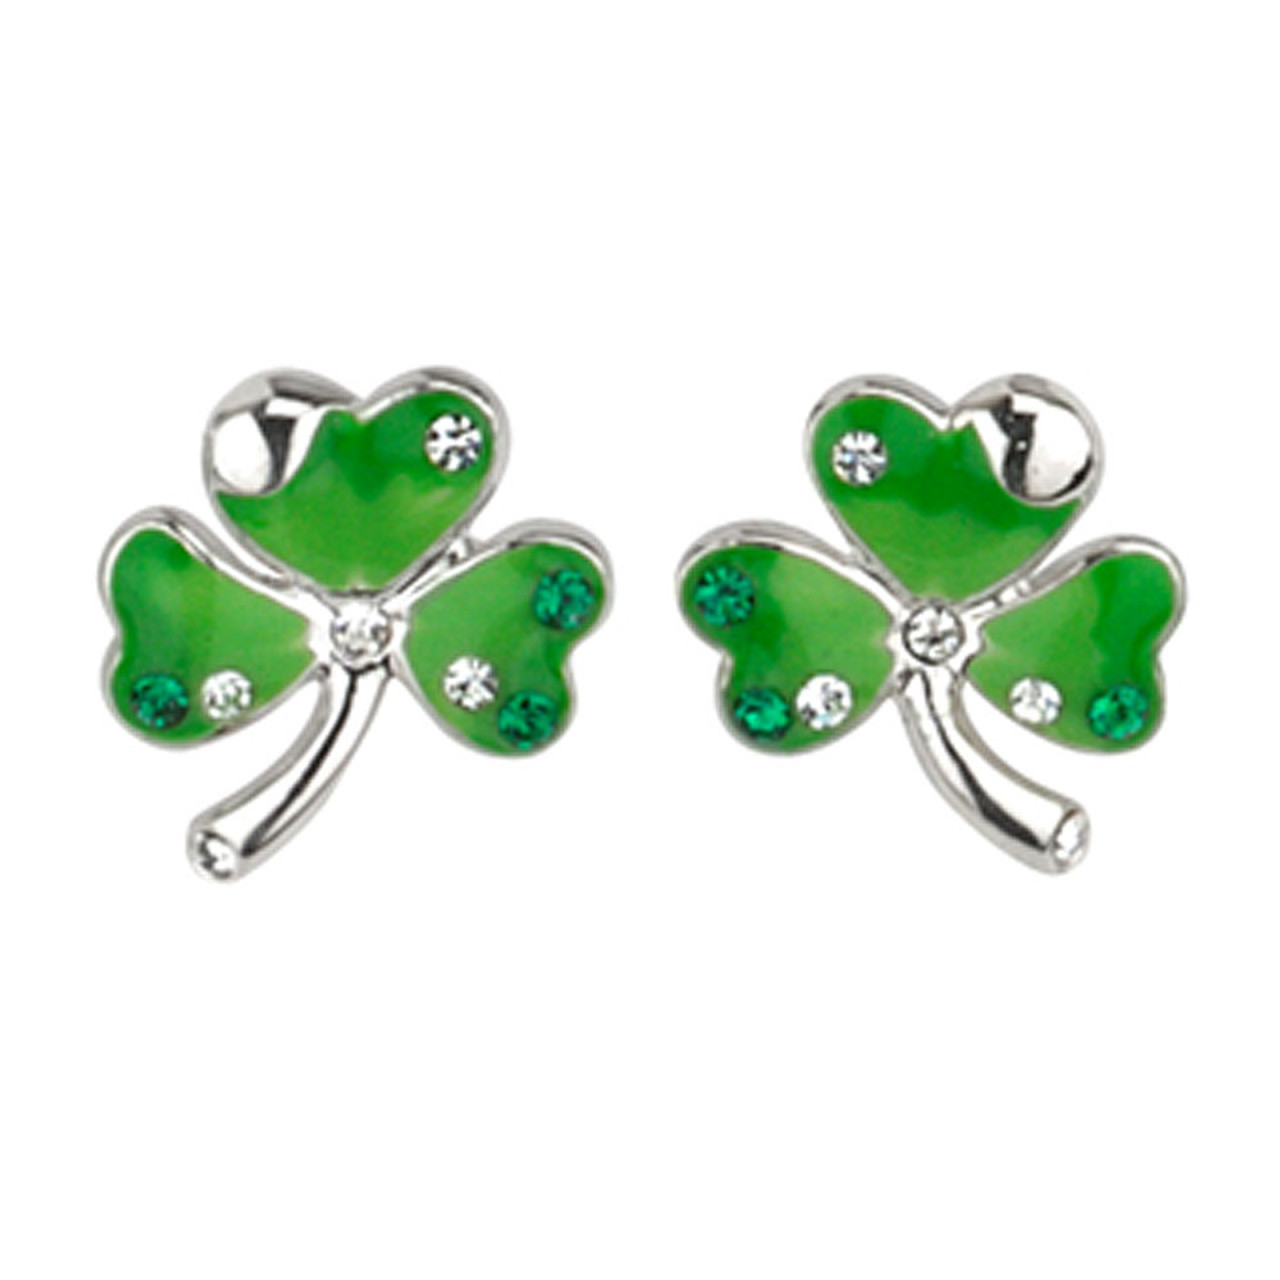 Silver Plated Green Shamrock Earrings with Crystals